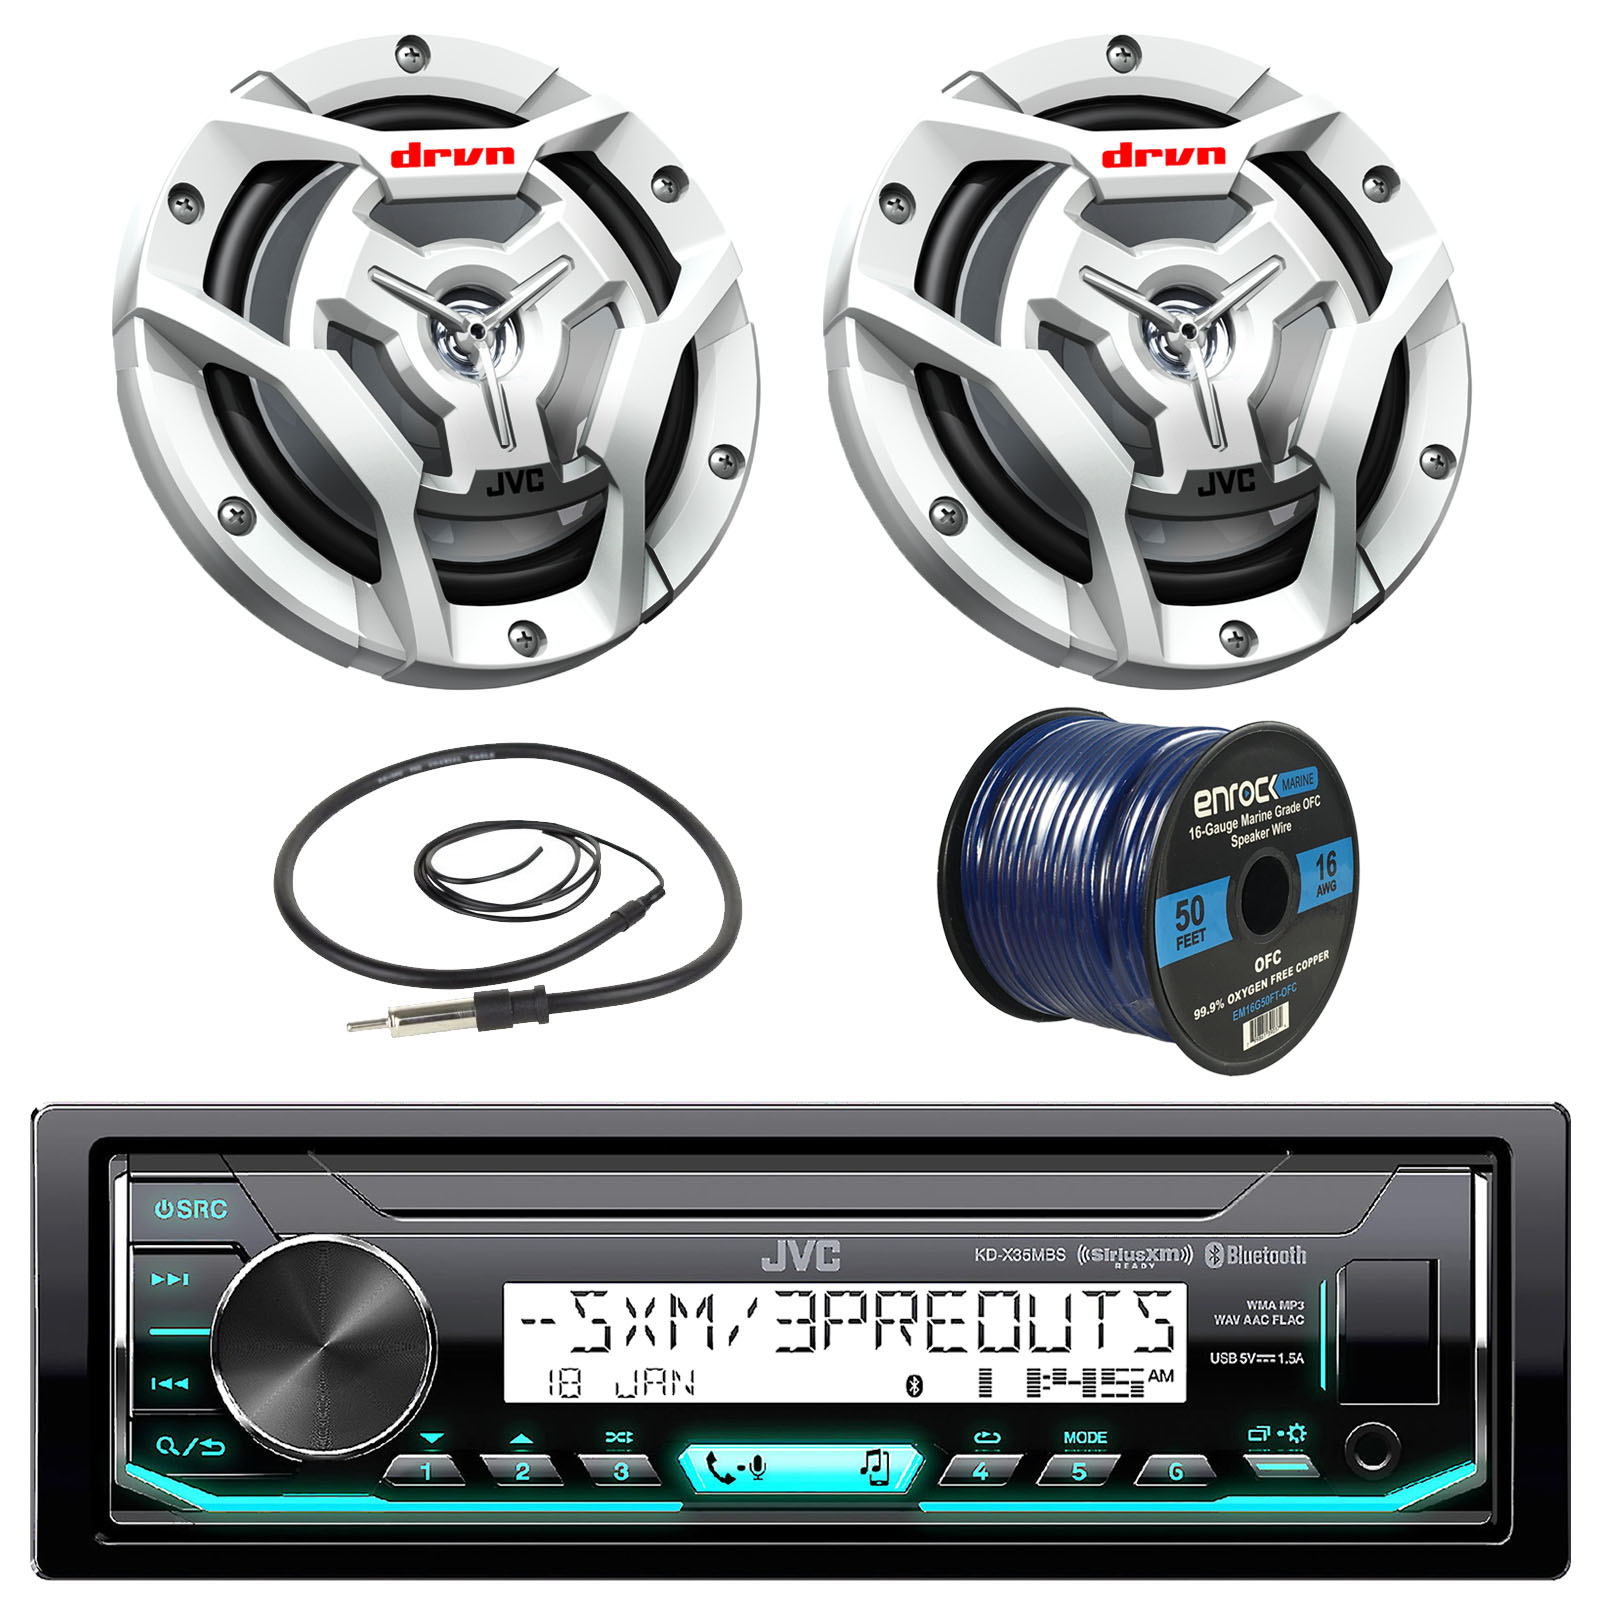 "JVC KDX35MBS Marine Boat Yacht Radio Stereo MP3 Player Receiver Bundle Combo With 2x JVC CS-DR6201MW 300-Watt 6.5"" 2-Way Coaxial Speakers + Enrock Radio Antenna + 50 Foot 16g Speaker Wire"